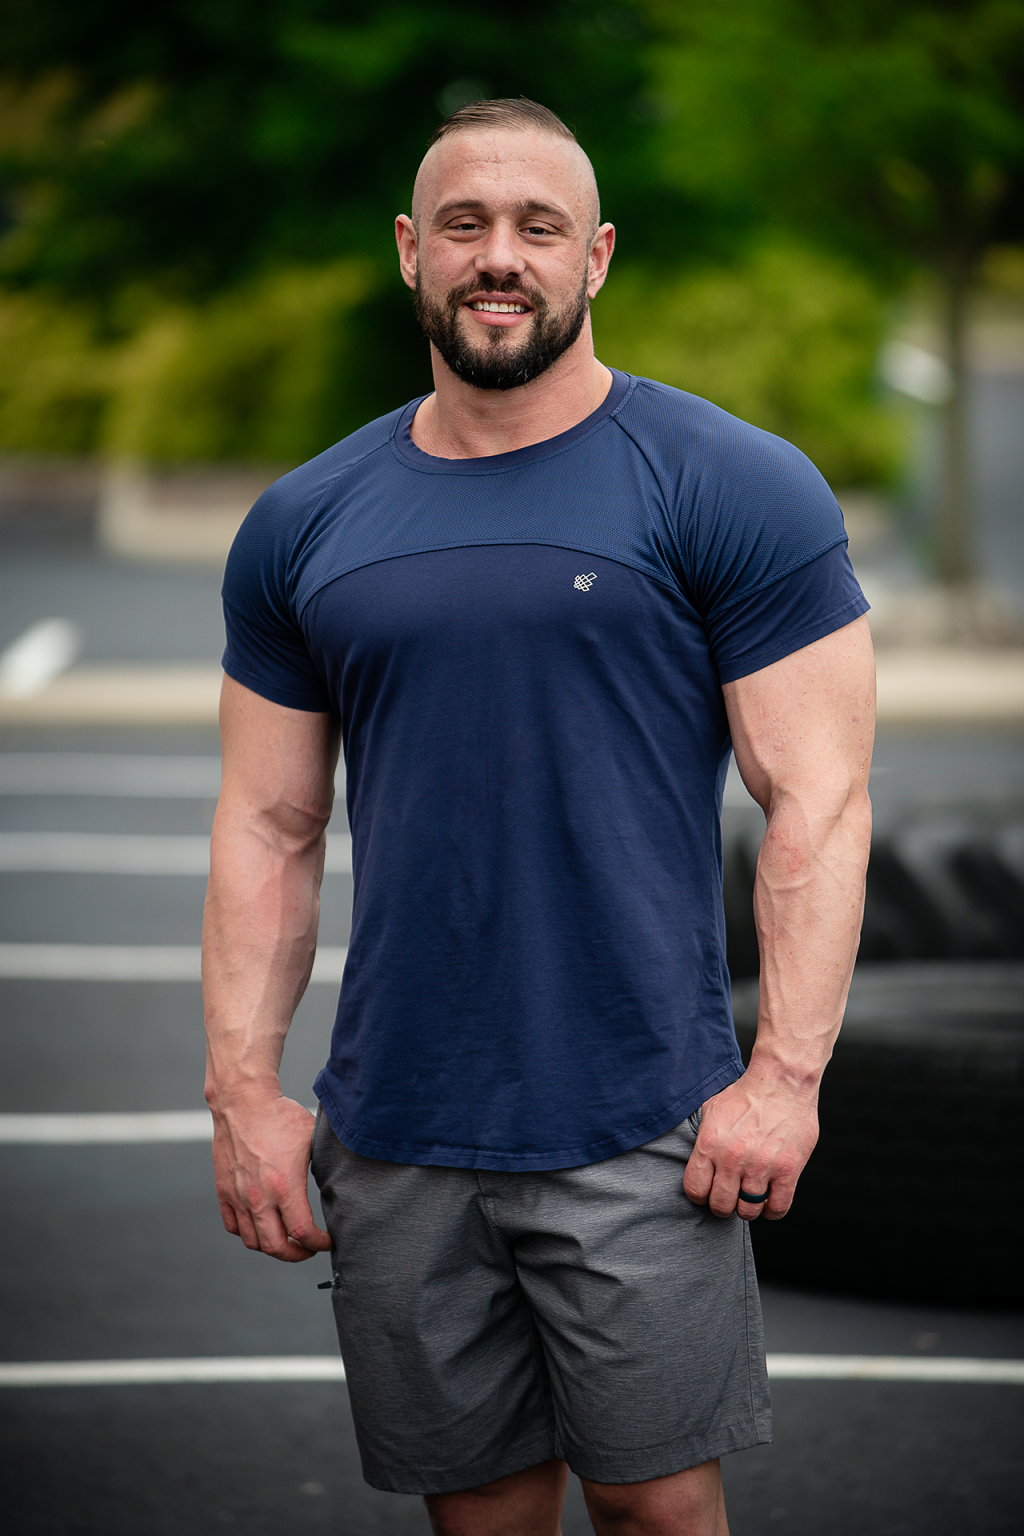 Personal Trainer Columbus, Ohio - Joe Wade